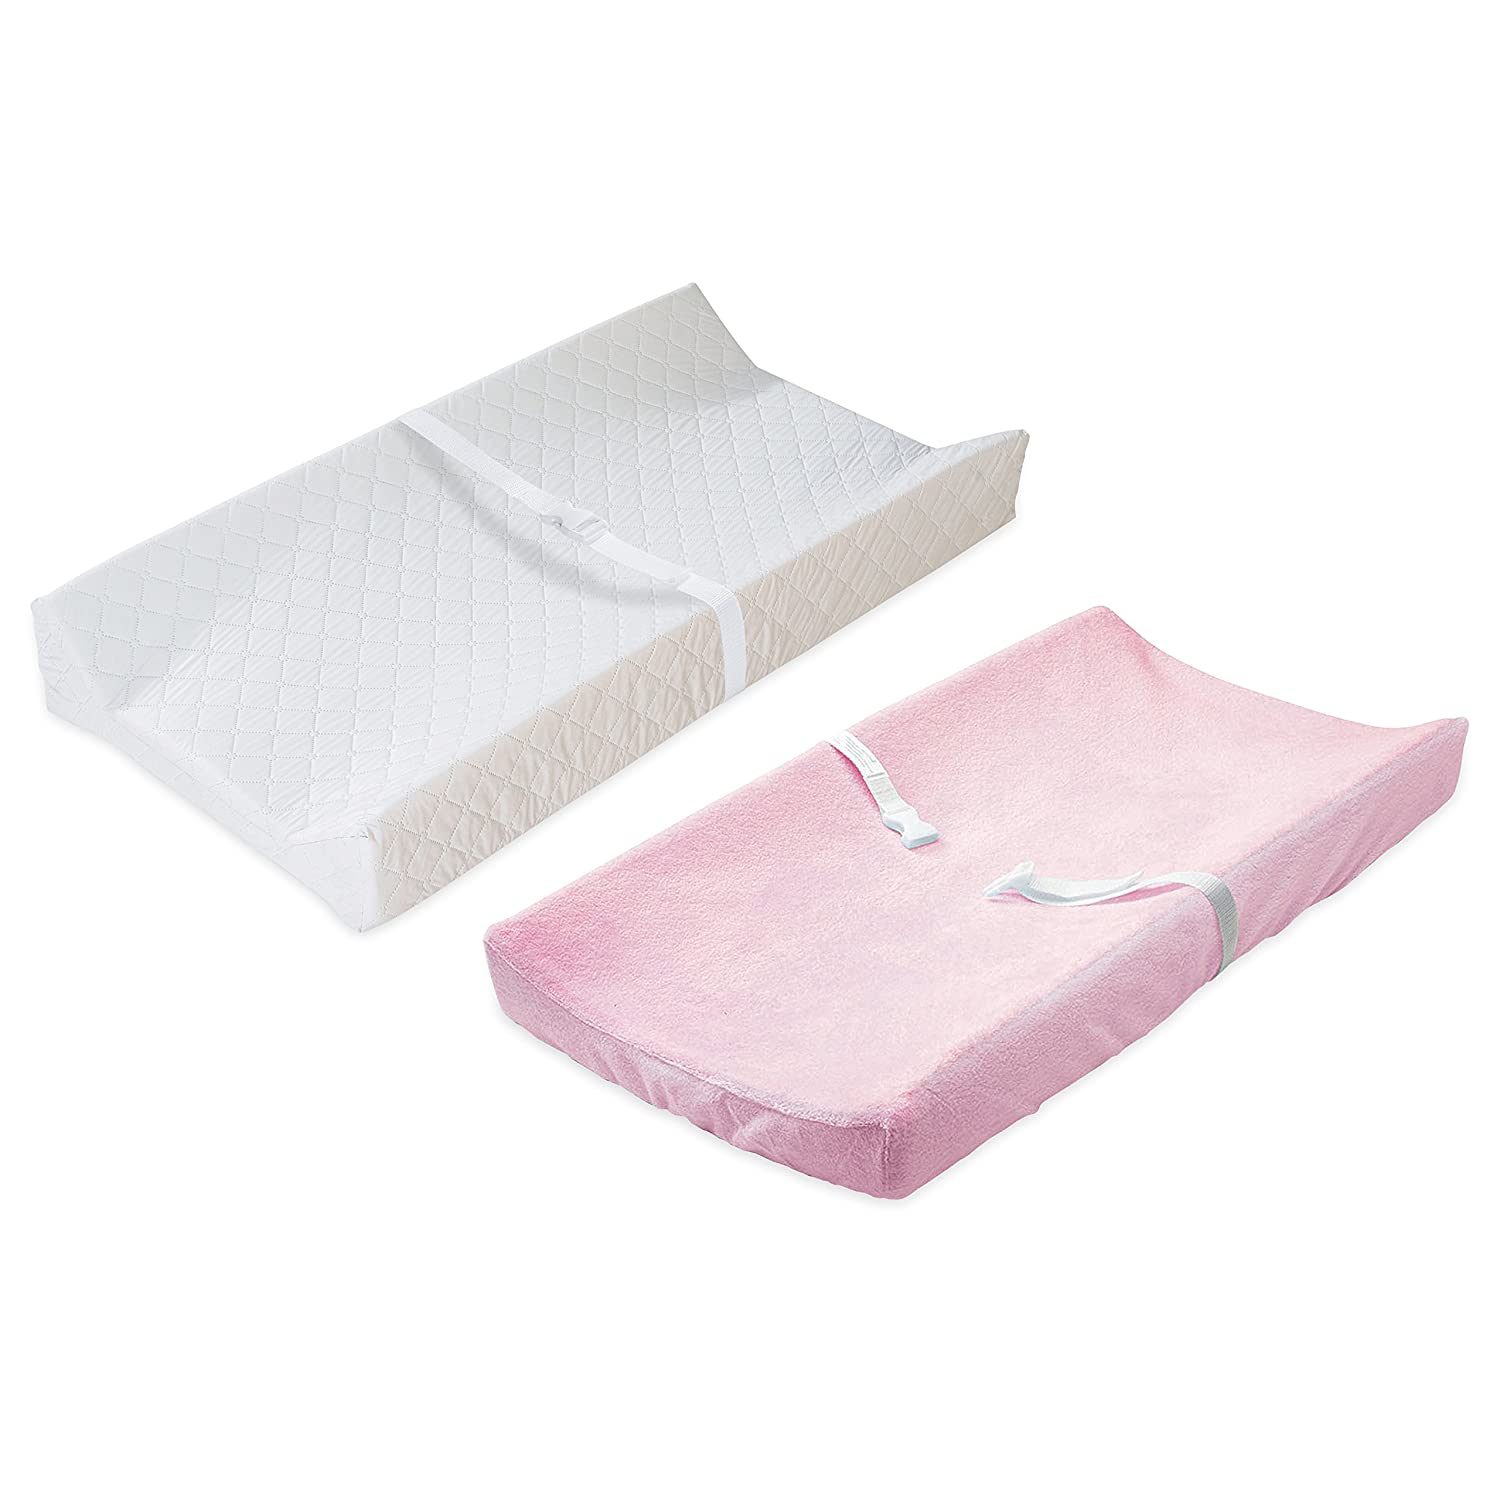 Summer Infant Contoured Changing Pad with Heavenly Soft Changing Pad Cover, White